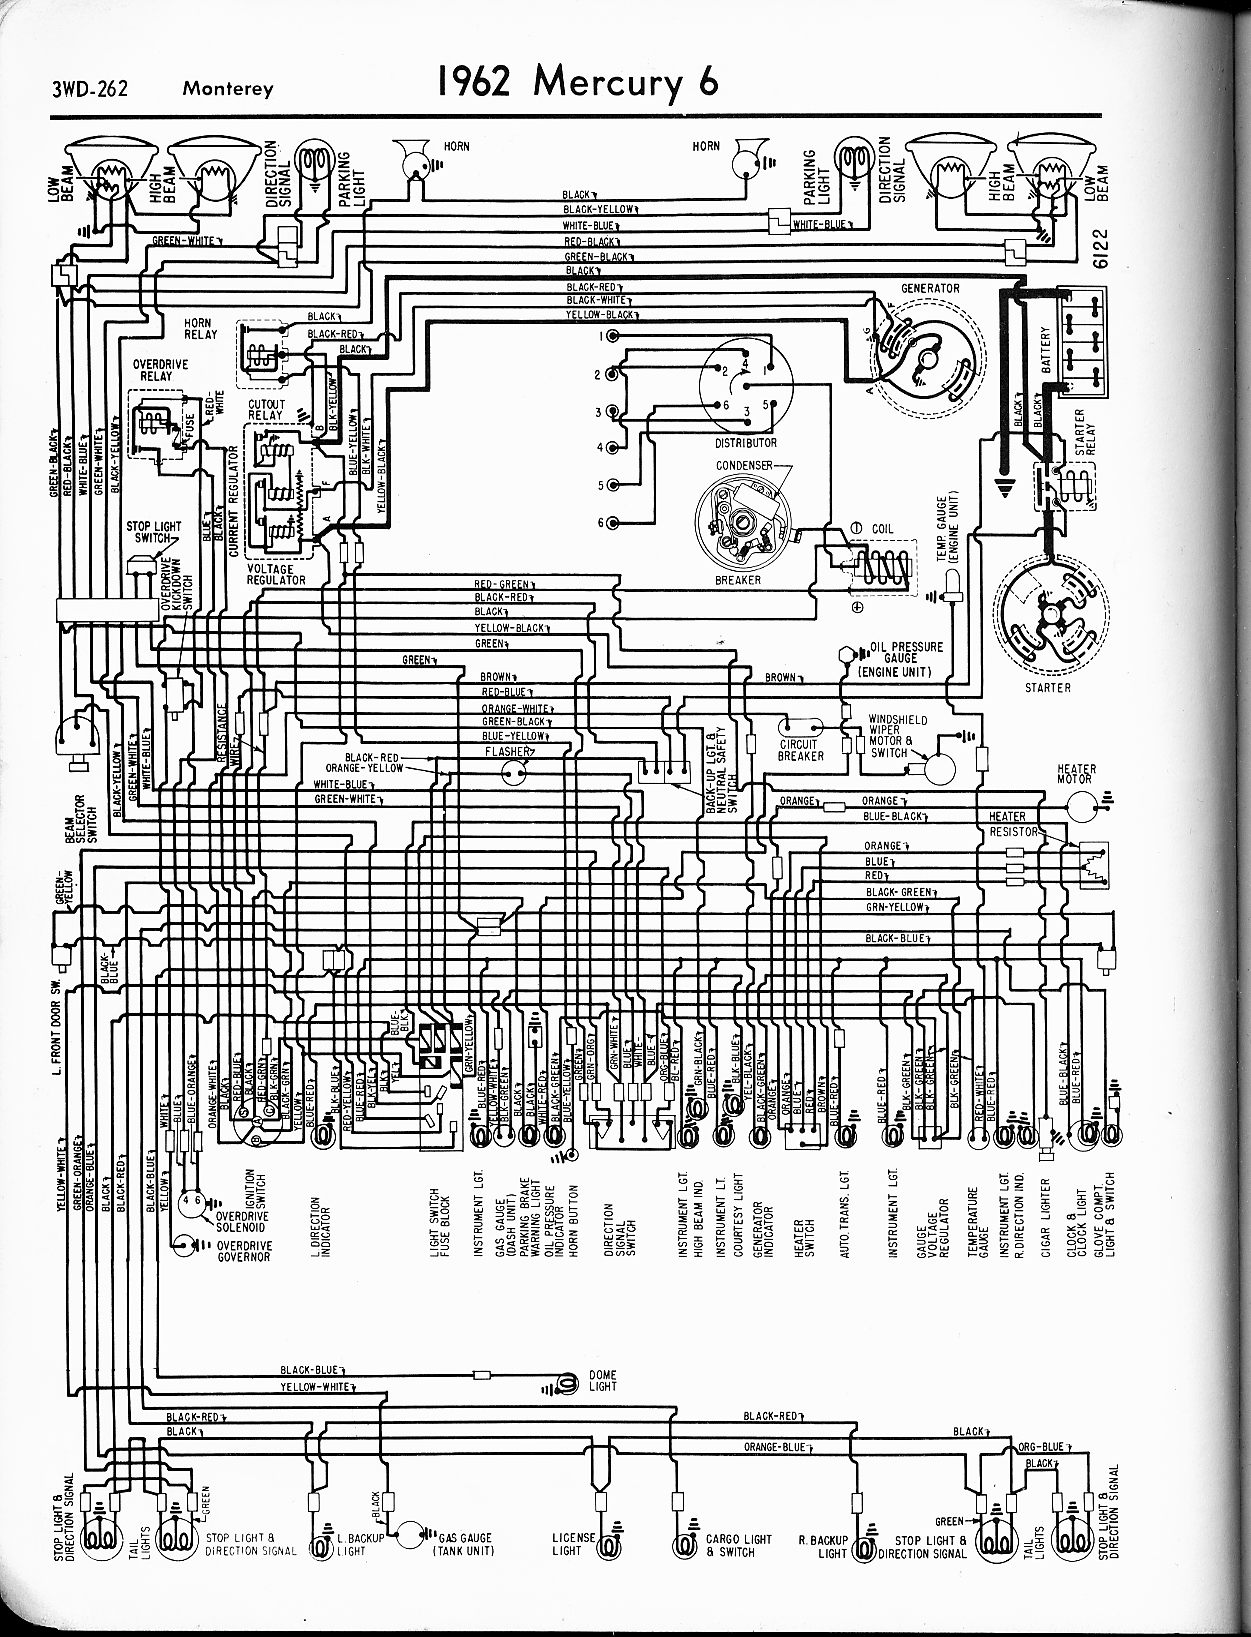 1953 Ford F100 Engine Wiring Diagram Circuit Diagrams Image Wire 1955 Steering Box Starter Smart U2022 Rh Emgsolutions Co Overdrive Headlight Switch